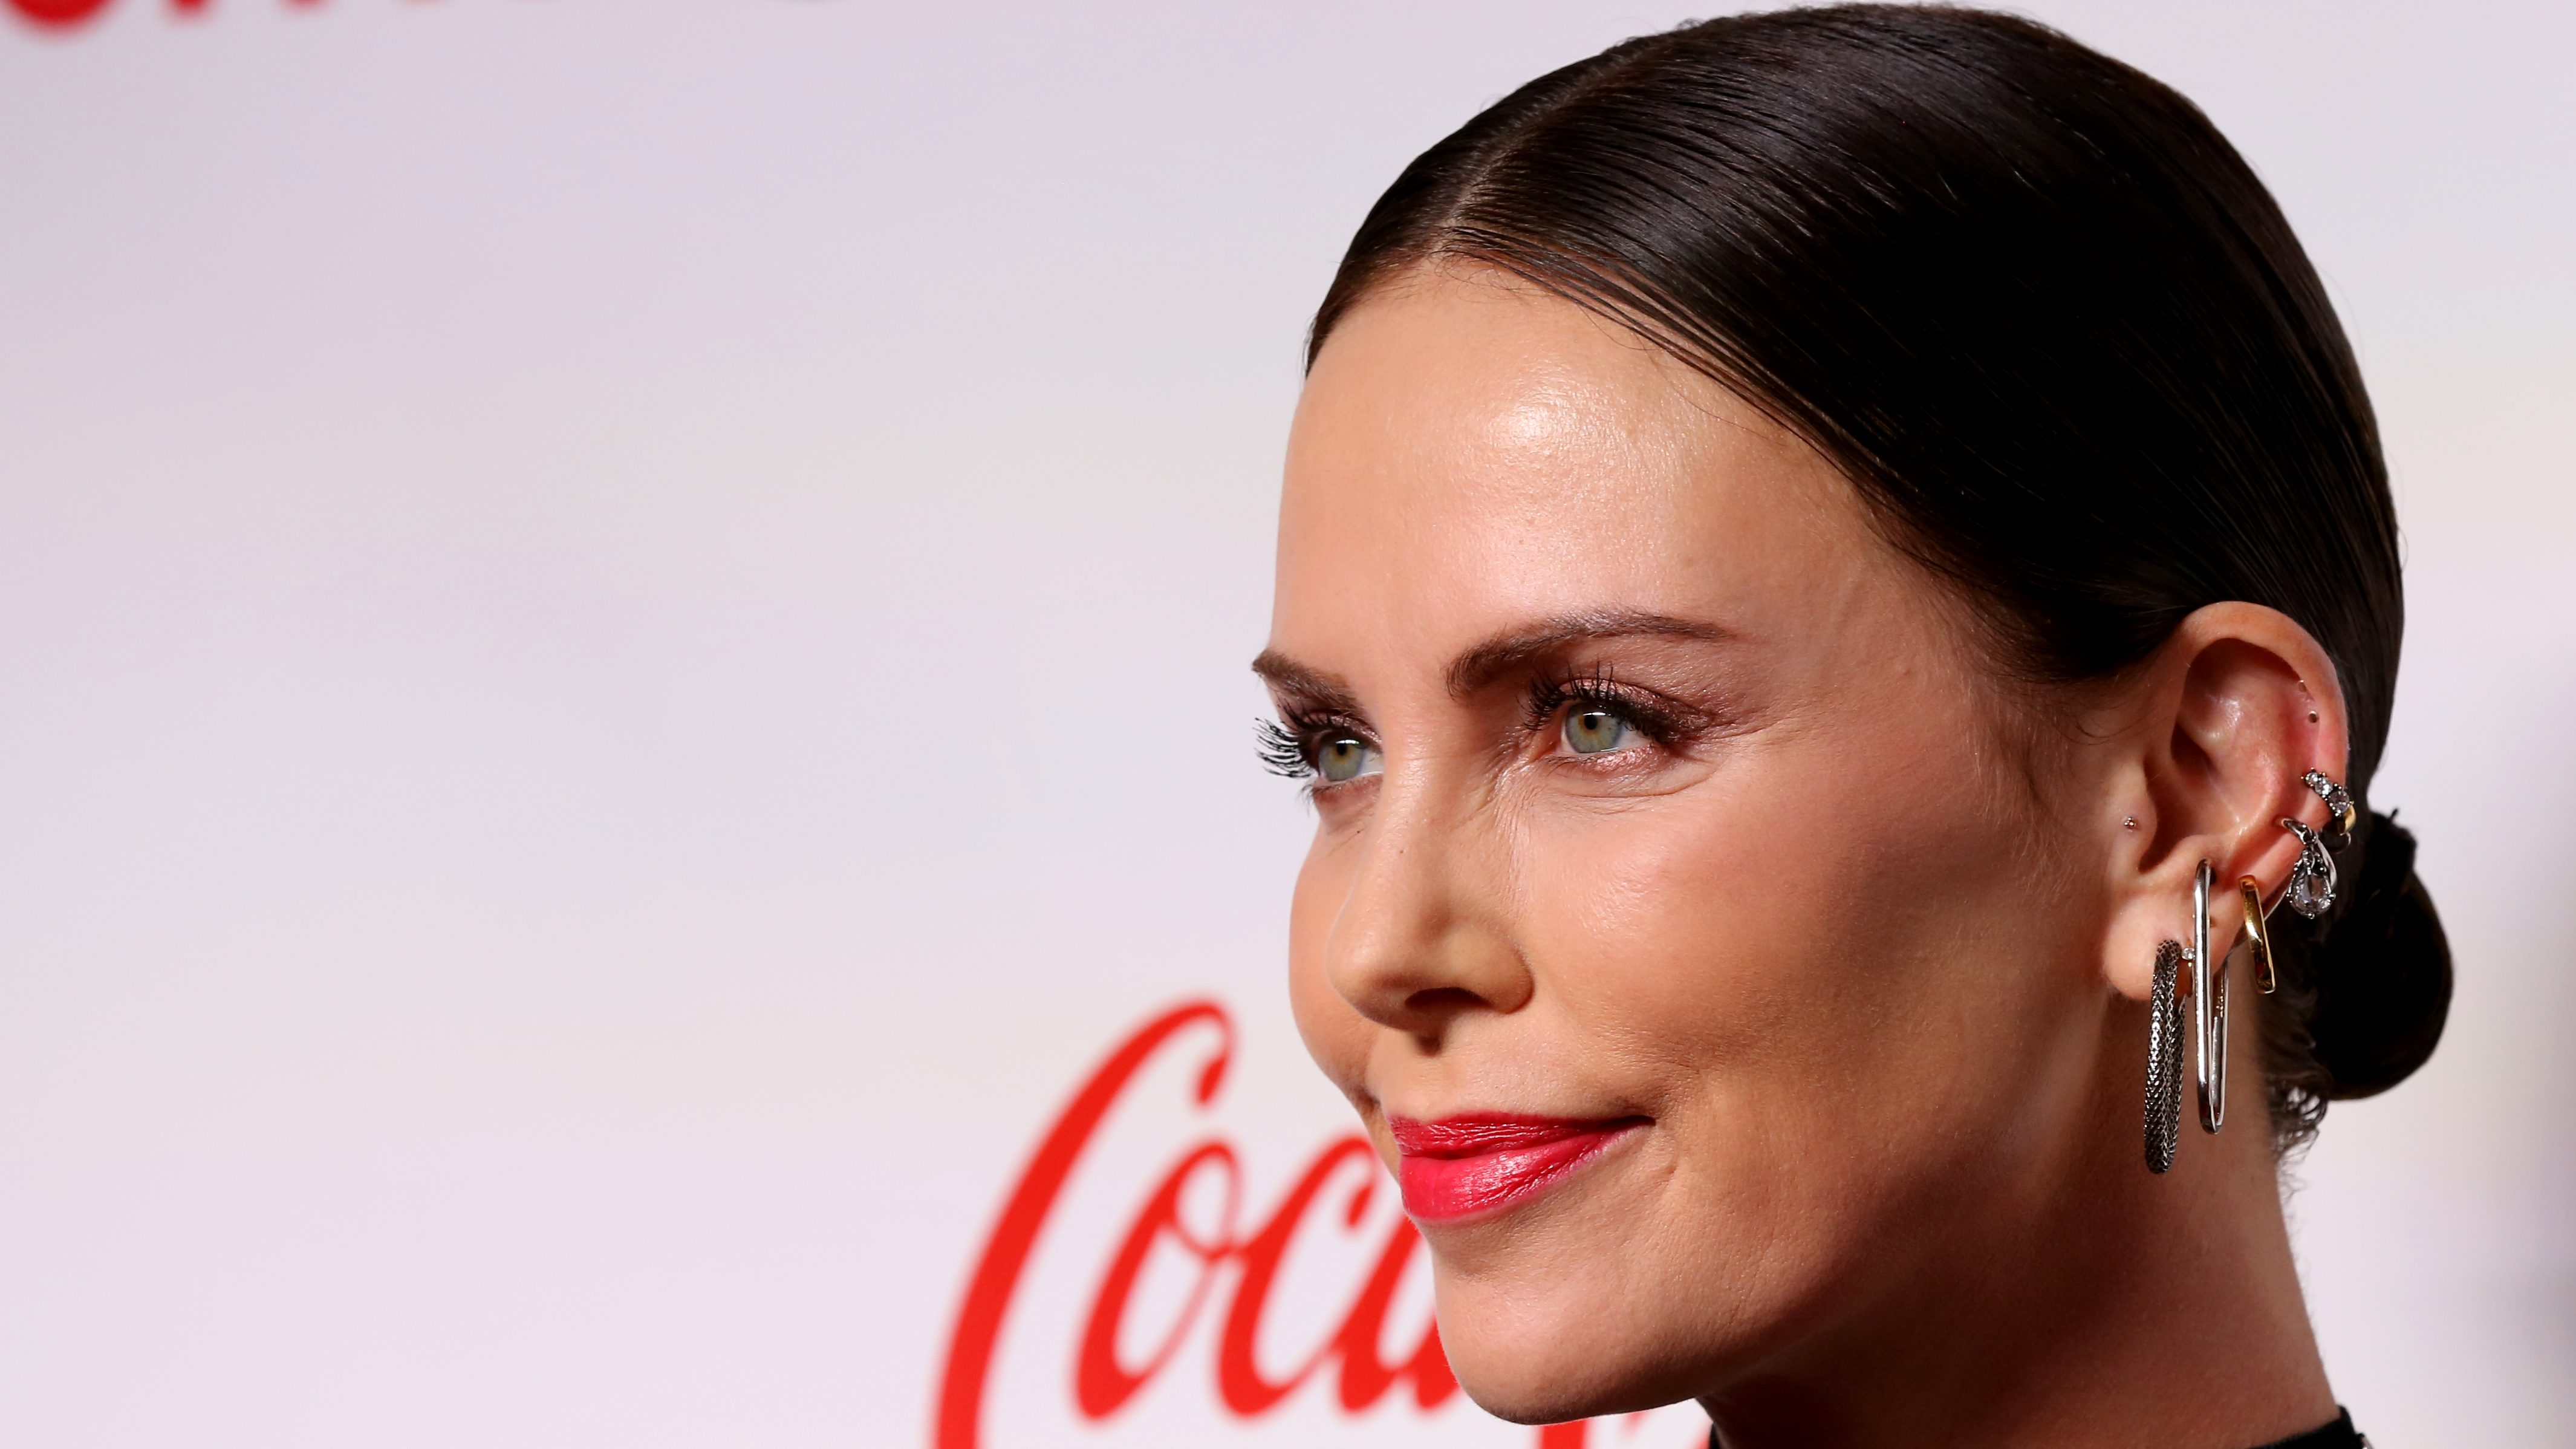 Charlize Theron Reveals Her 7-Year-Old Child Is Transgender: 'My Job As a Parent Is to Celebrate Them'